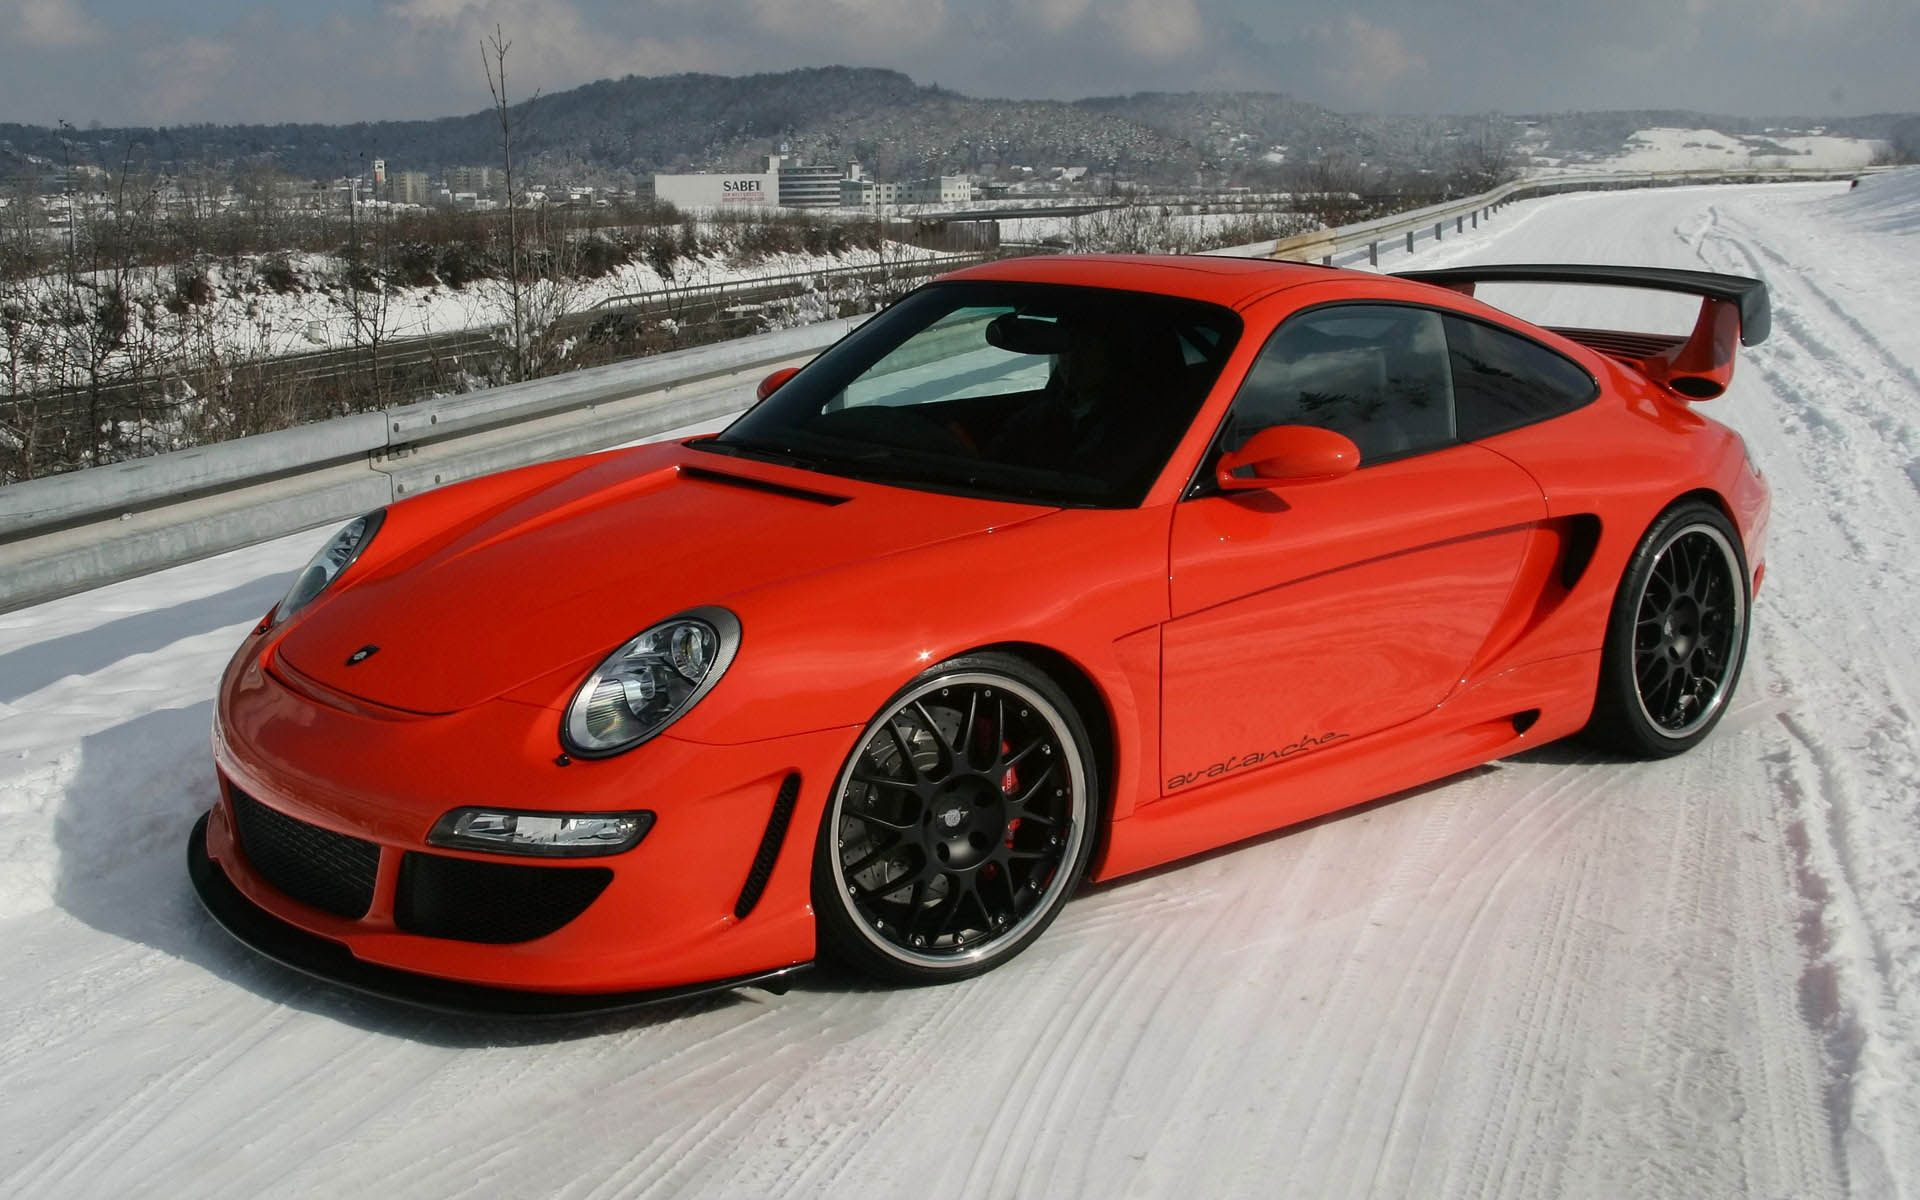 Red Abstract Gemballa Wallpapers Widescreen Porsche Cars Sports Car Sports Cars Luxury